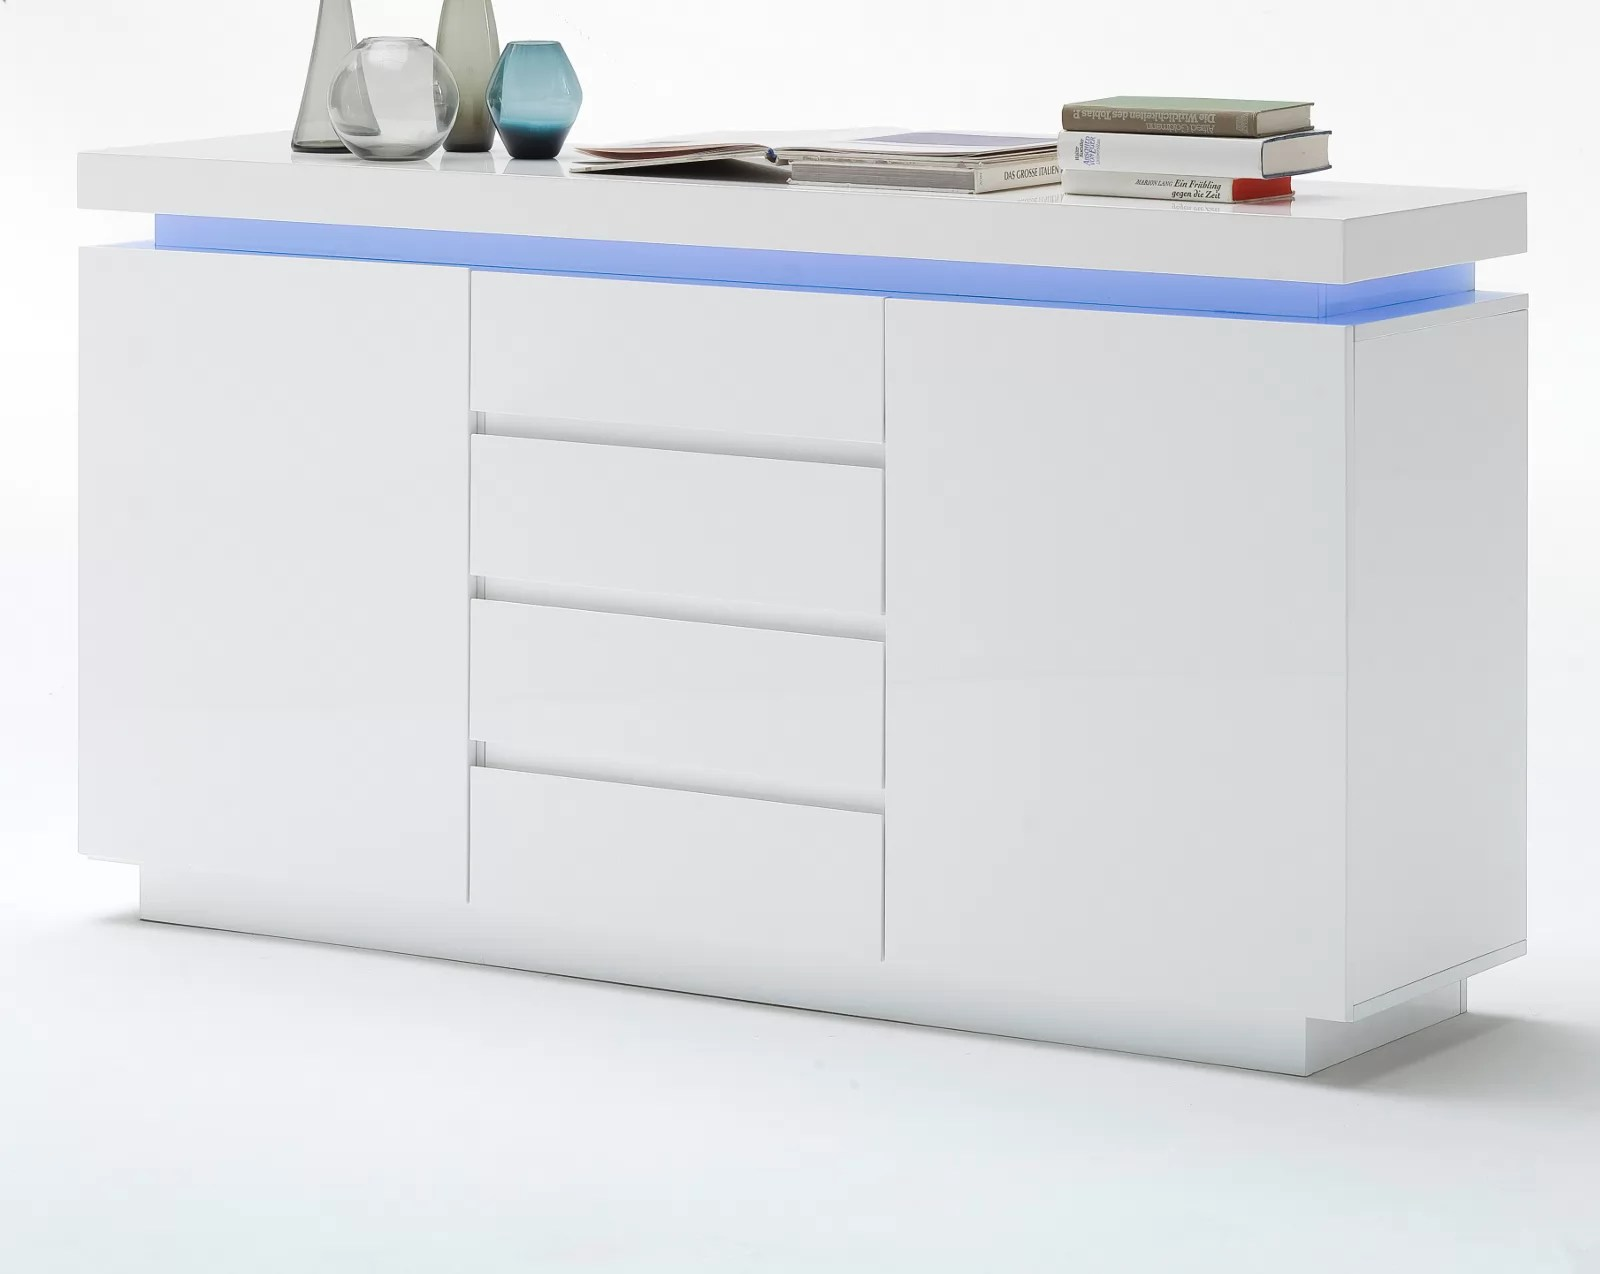 Kommode Led Sideboard Ocean In Hochglanz Weiß Echt Lack Kommode Inkl Led Beleuchtung Mit Farbwechsel 150 X 81 Cm